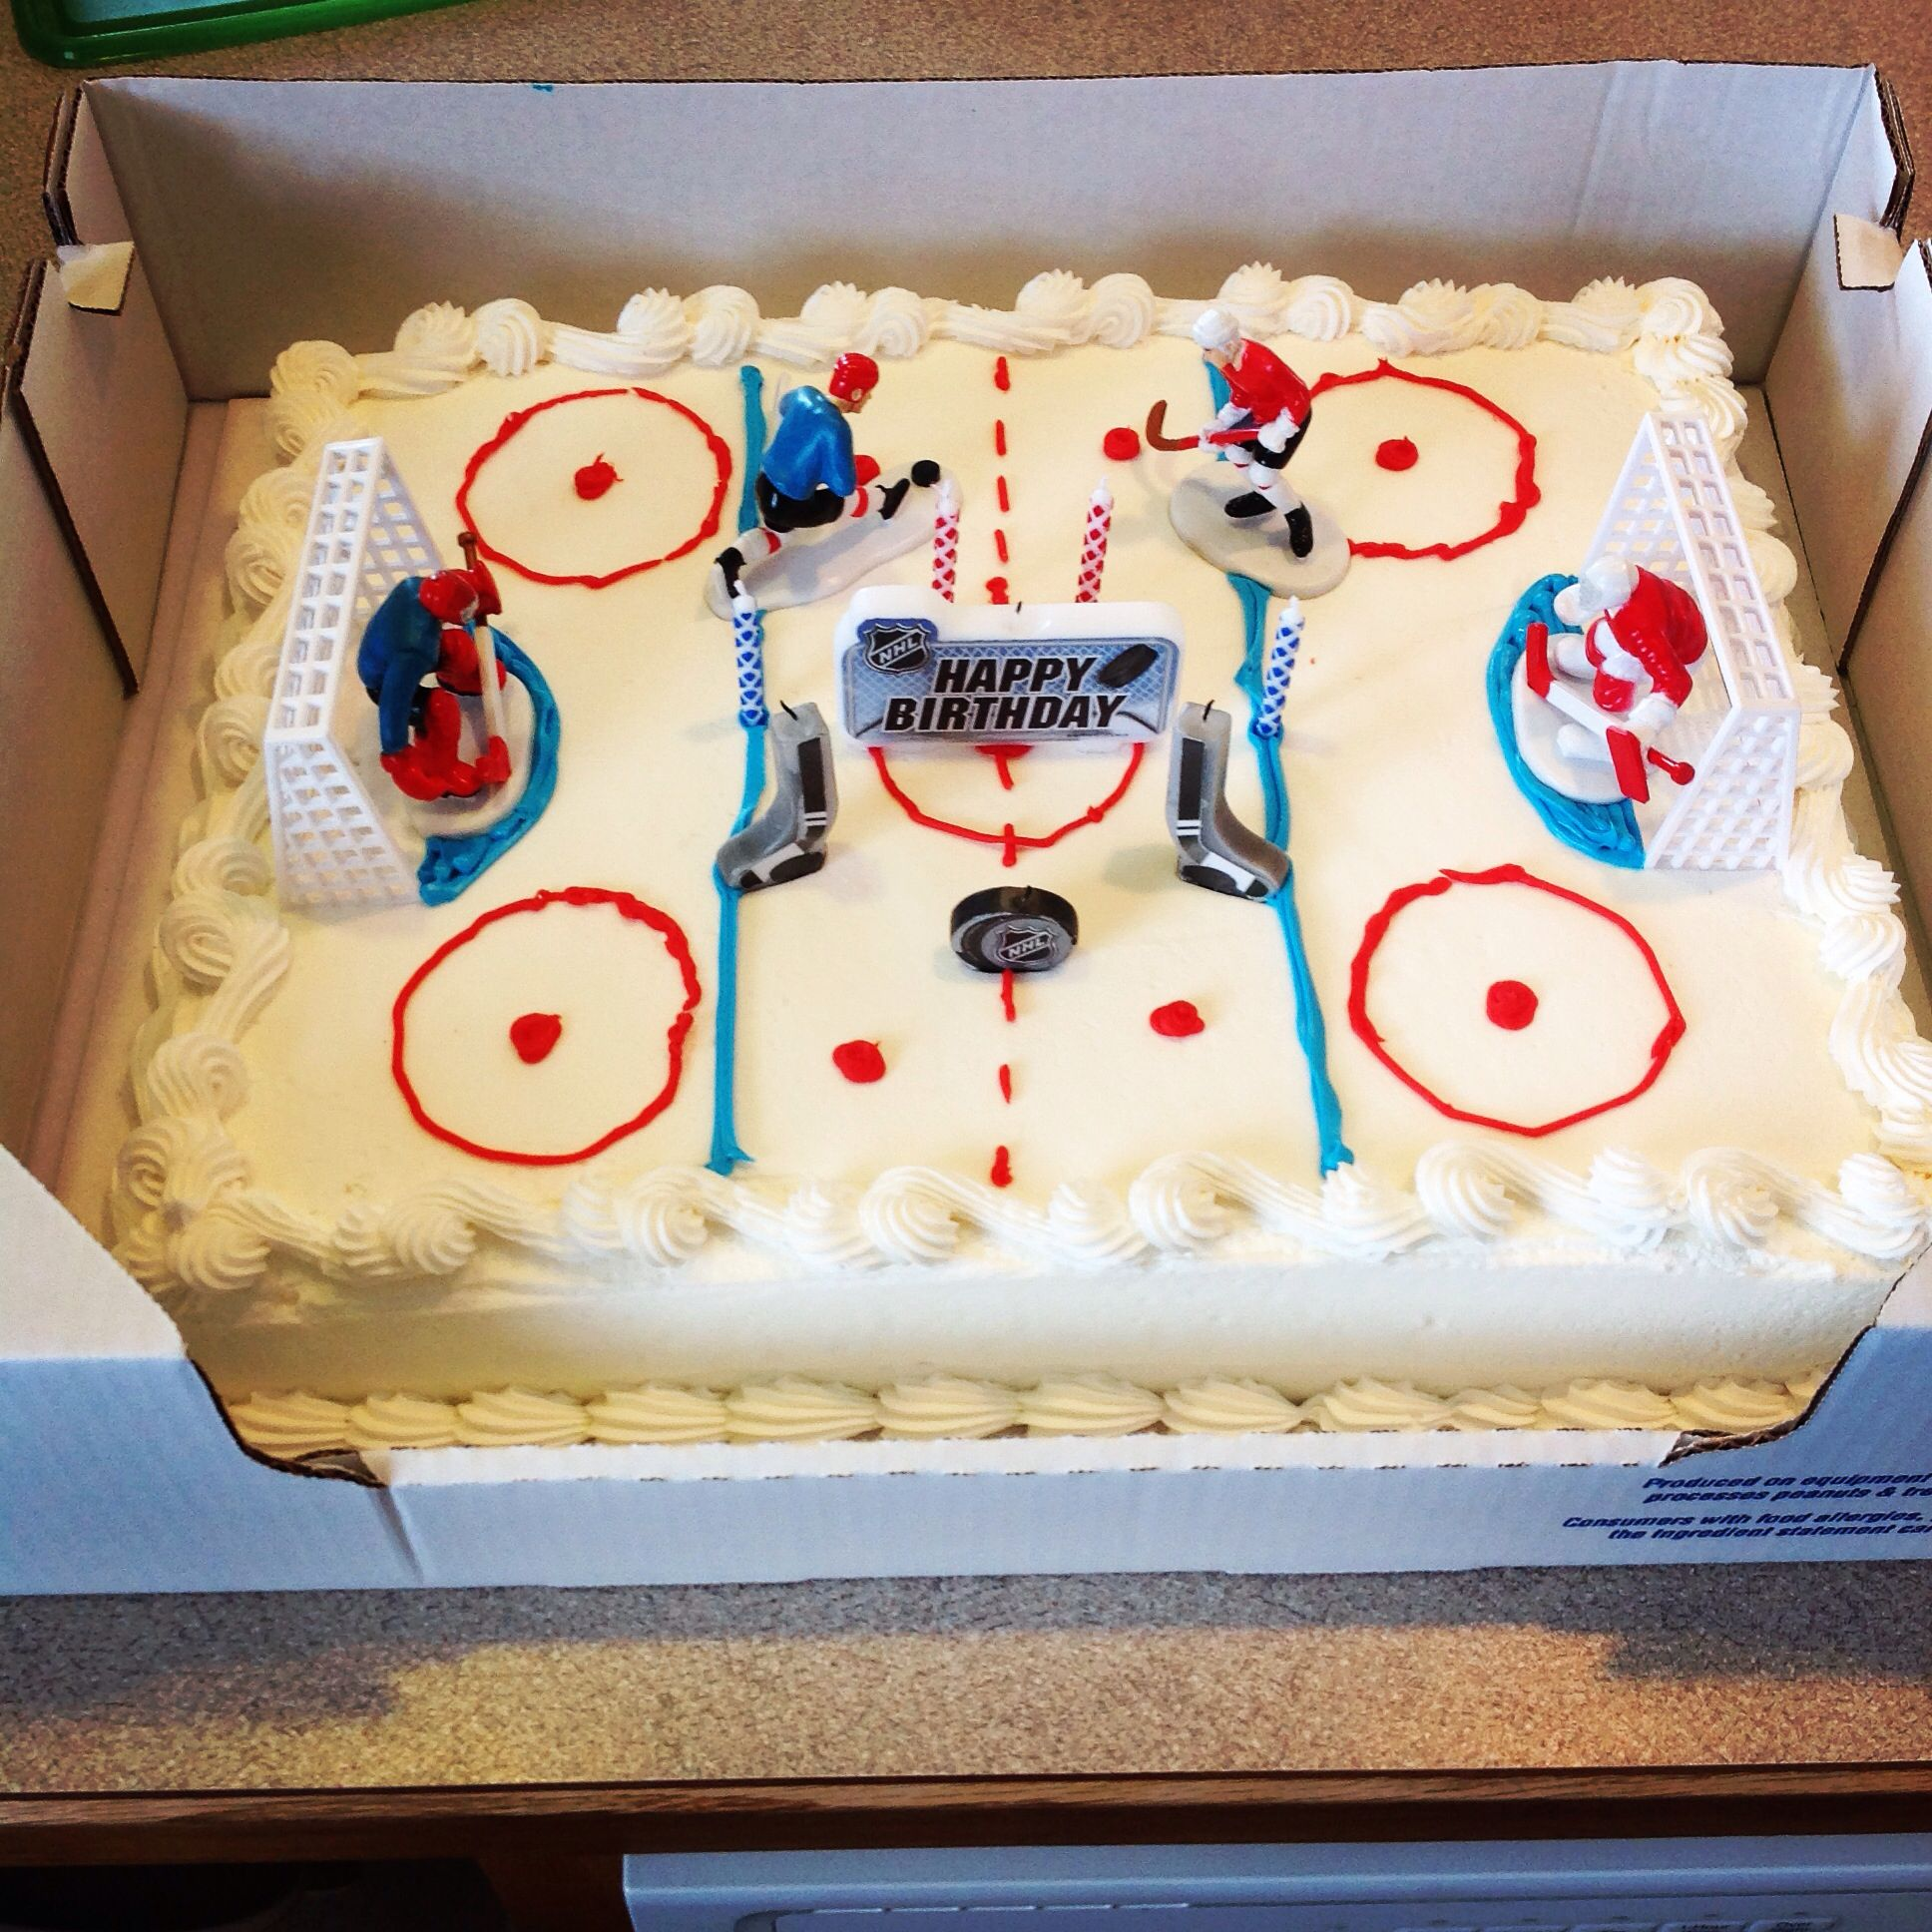 Hockey Rink Birthday Cake Cake From Costco Where I Requested A White Cake With No Design And No Writing Goa Hockey Birthday Cake Hockey Birthday Hockey Cakes